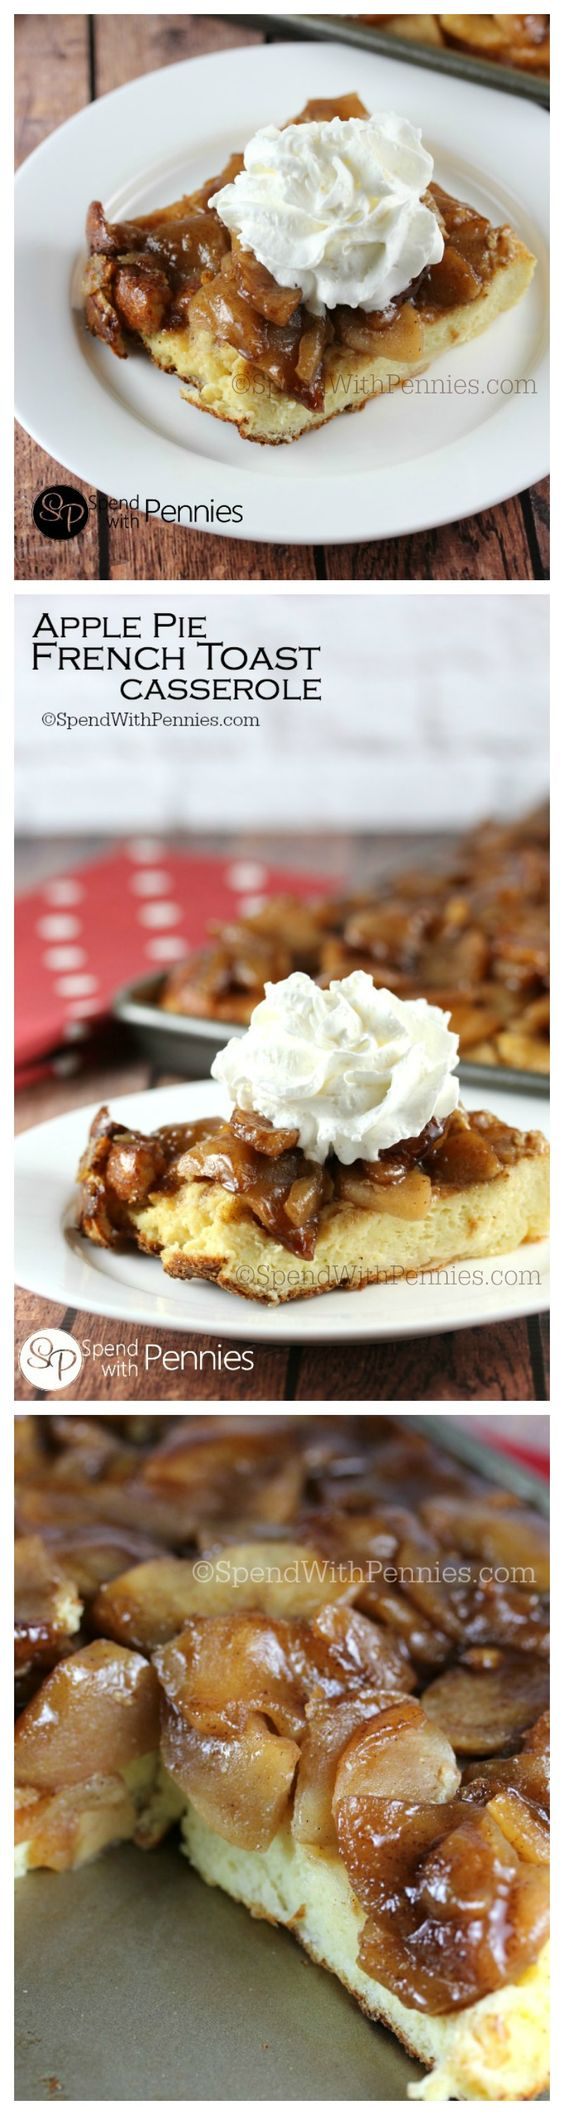 for the french toast recipes breakfast bake recipe brunch pie fillings